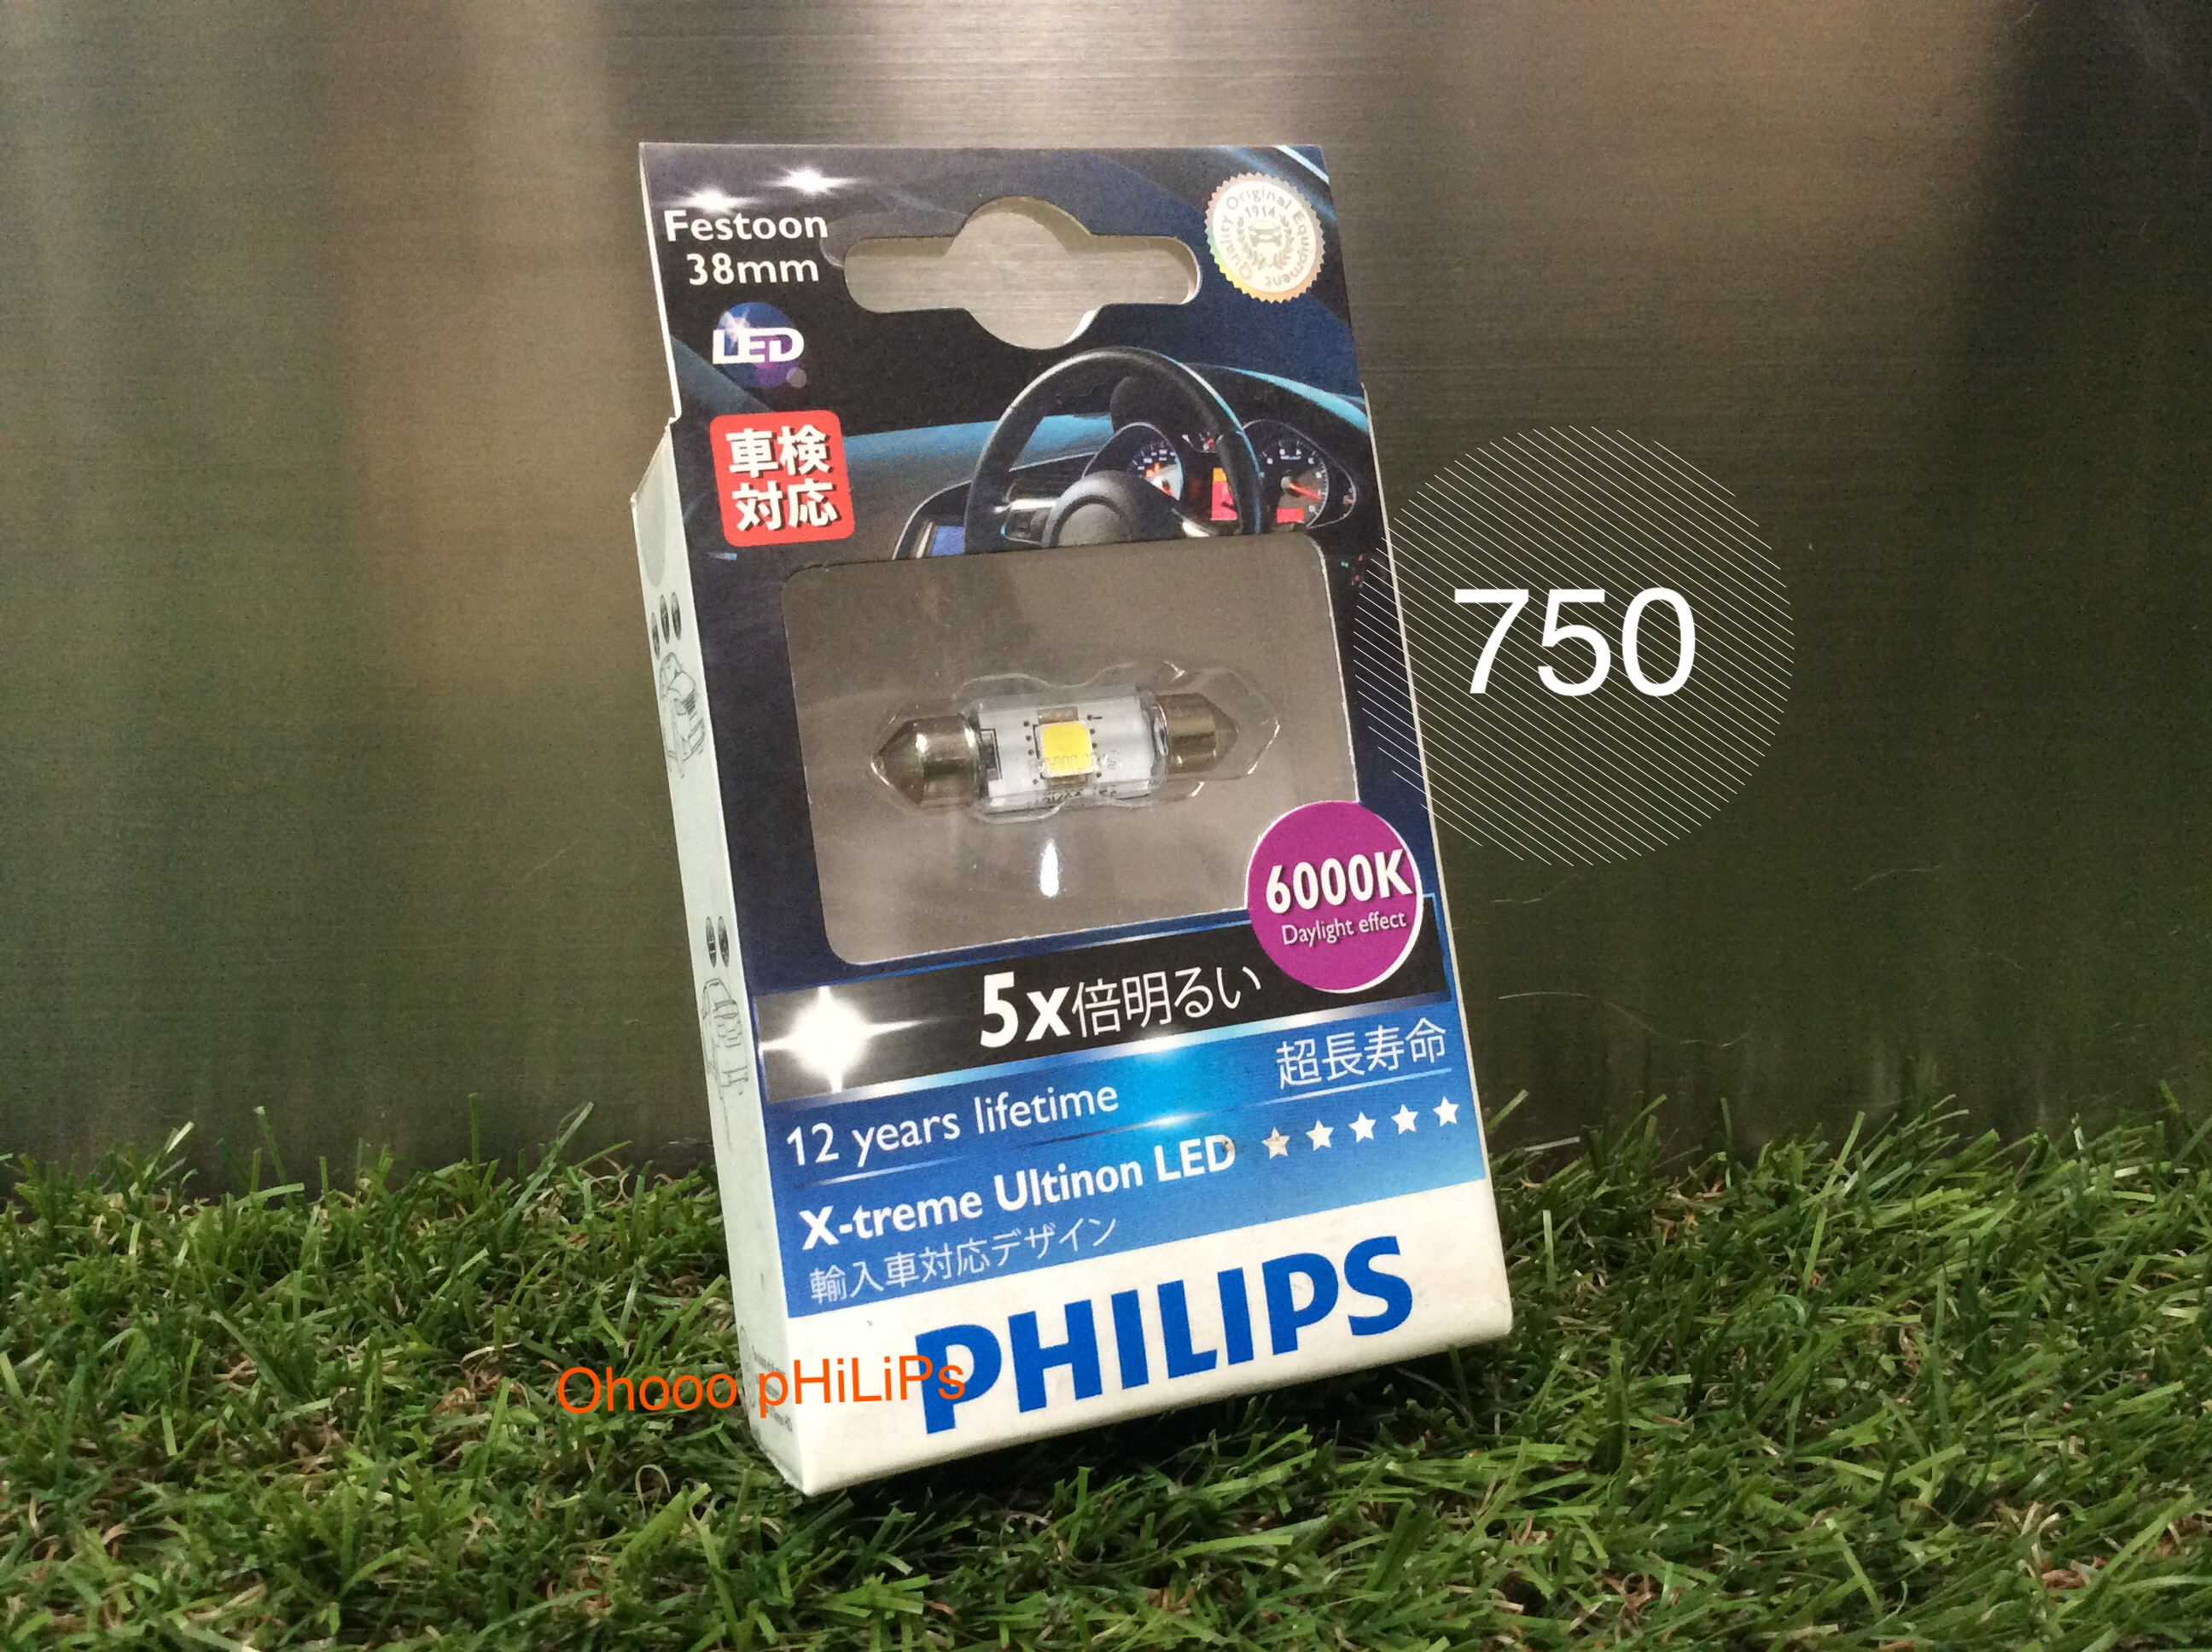 Philips LED Festoon 38mm 6000K